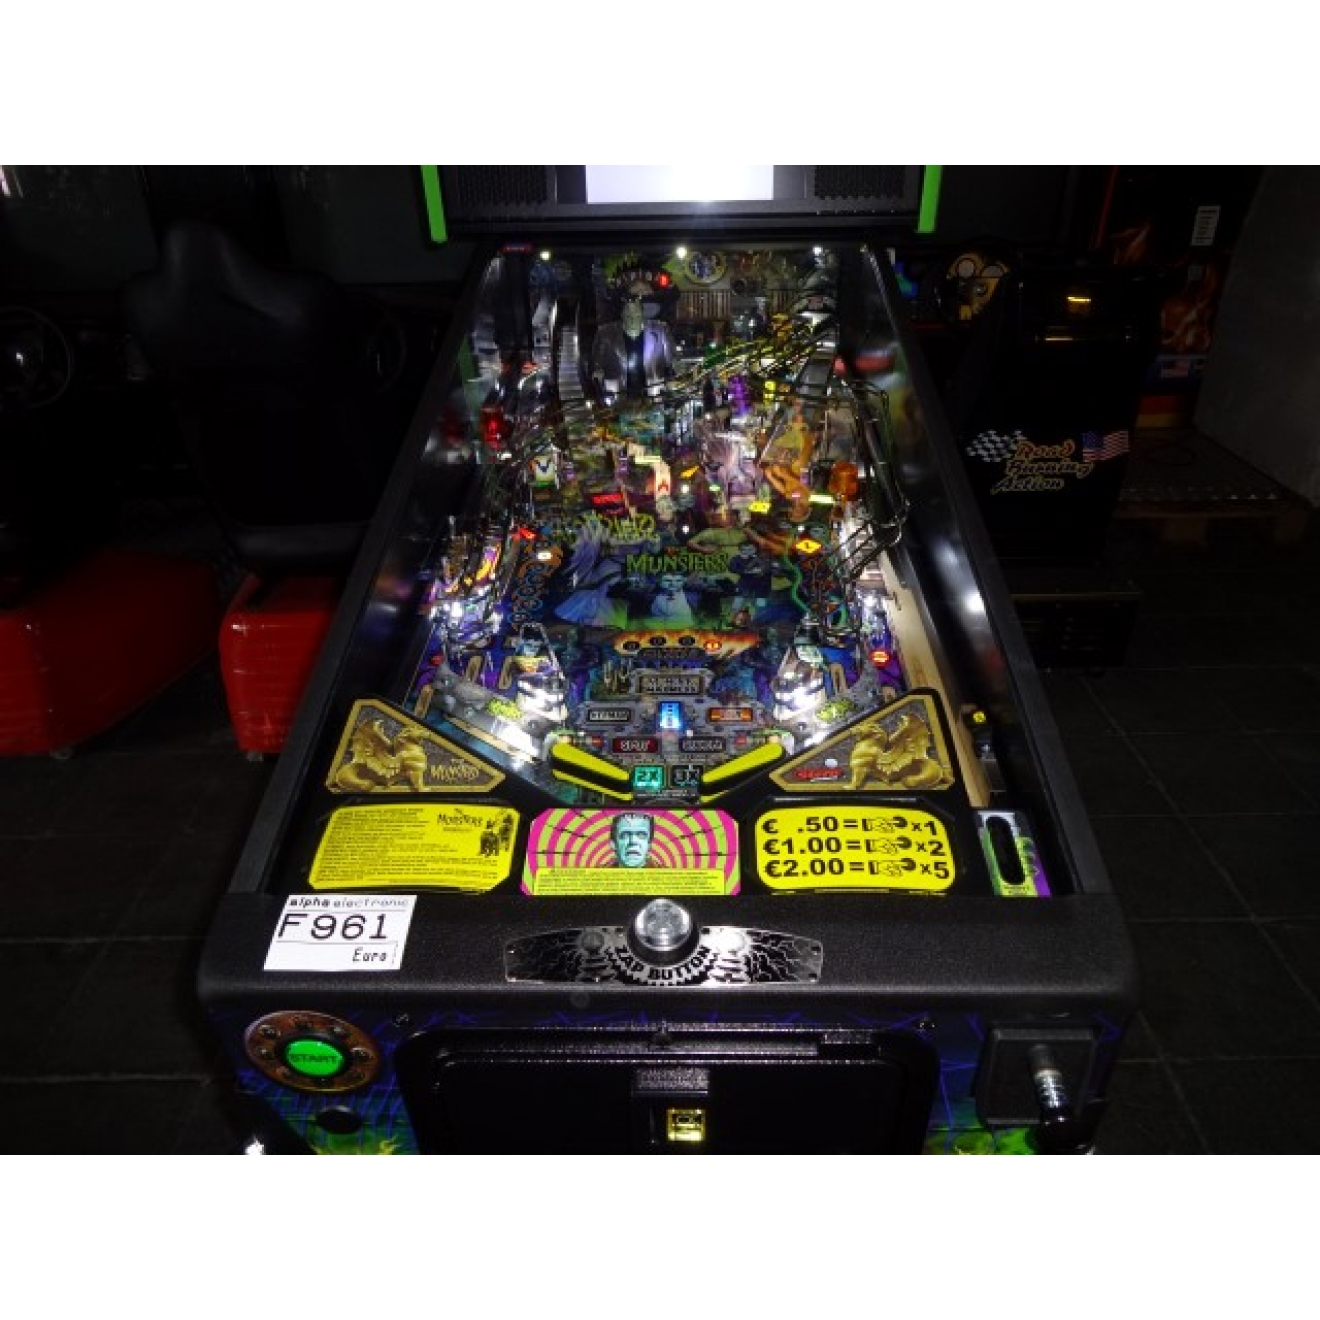 The Munsters Pro Edition, Stern Pinball, NEU, Flipper, F961, Pinball Machine